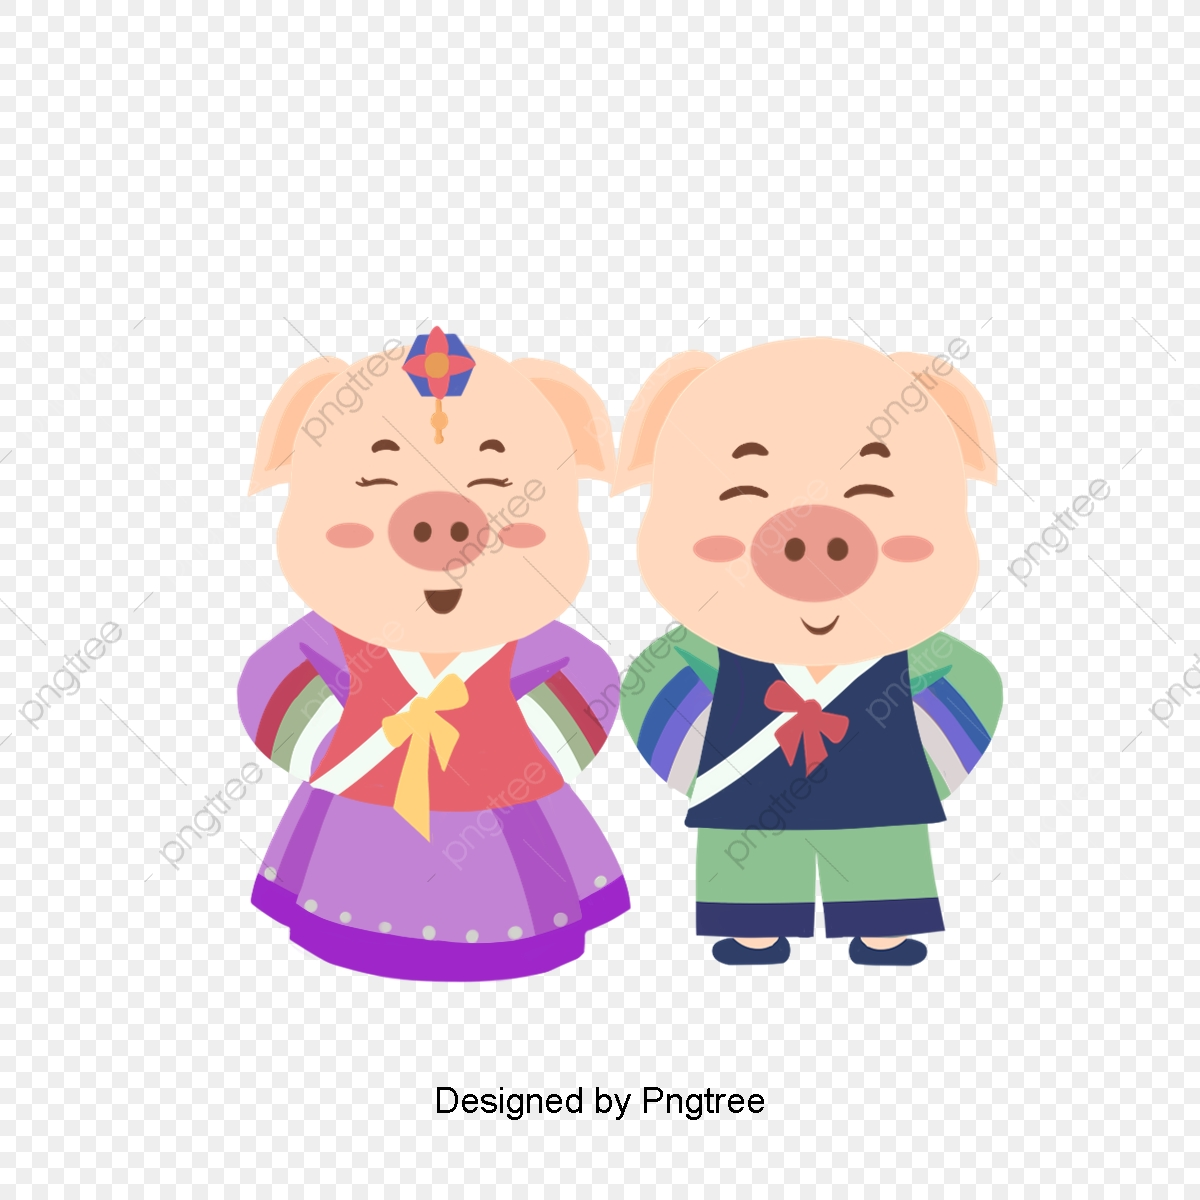 Pig clipart couple. Cartoon of pigs wear